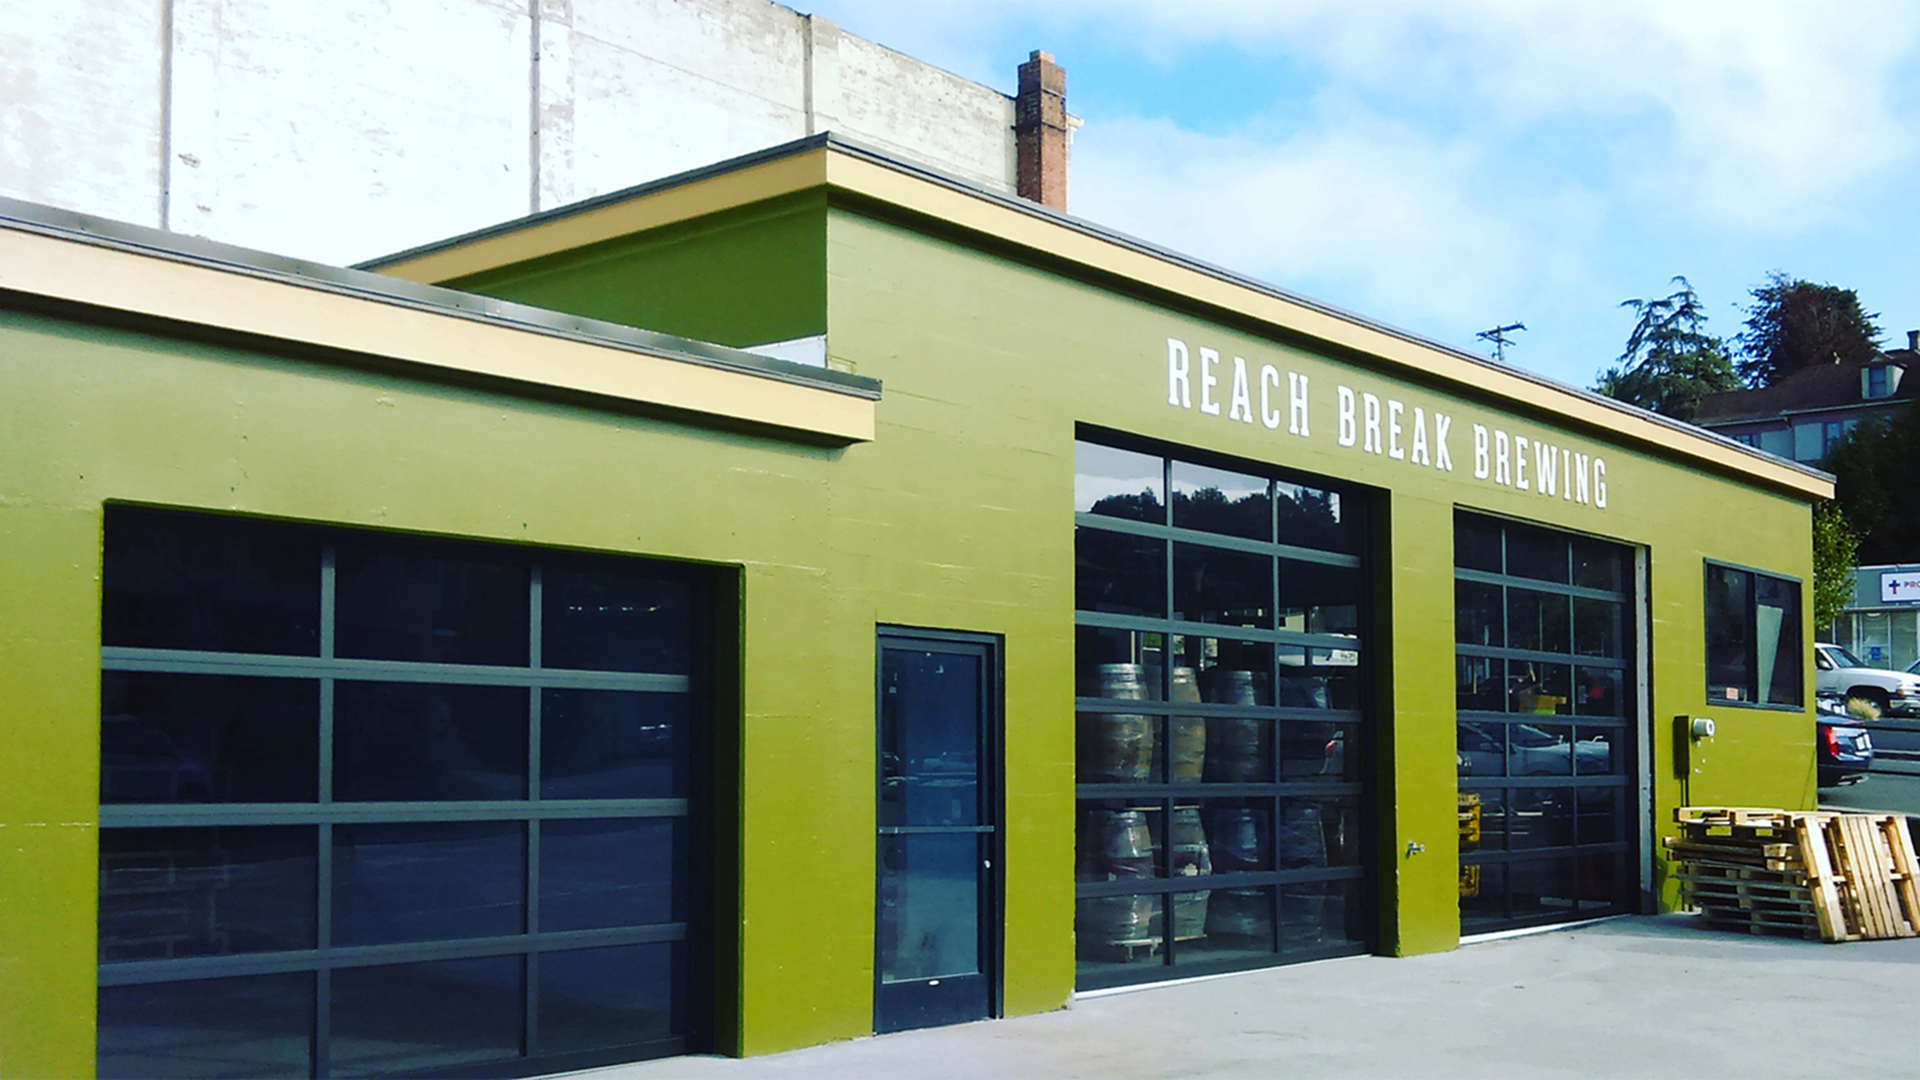 reach-break-brewery-astoria-oregon-sour-beer-artwalk